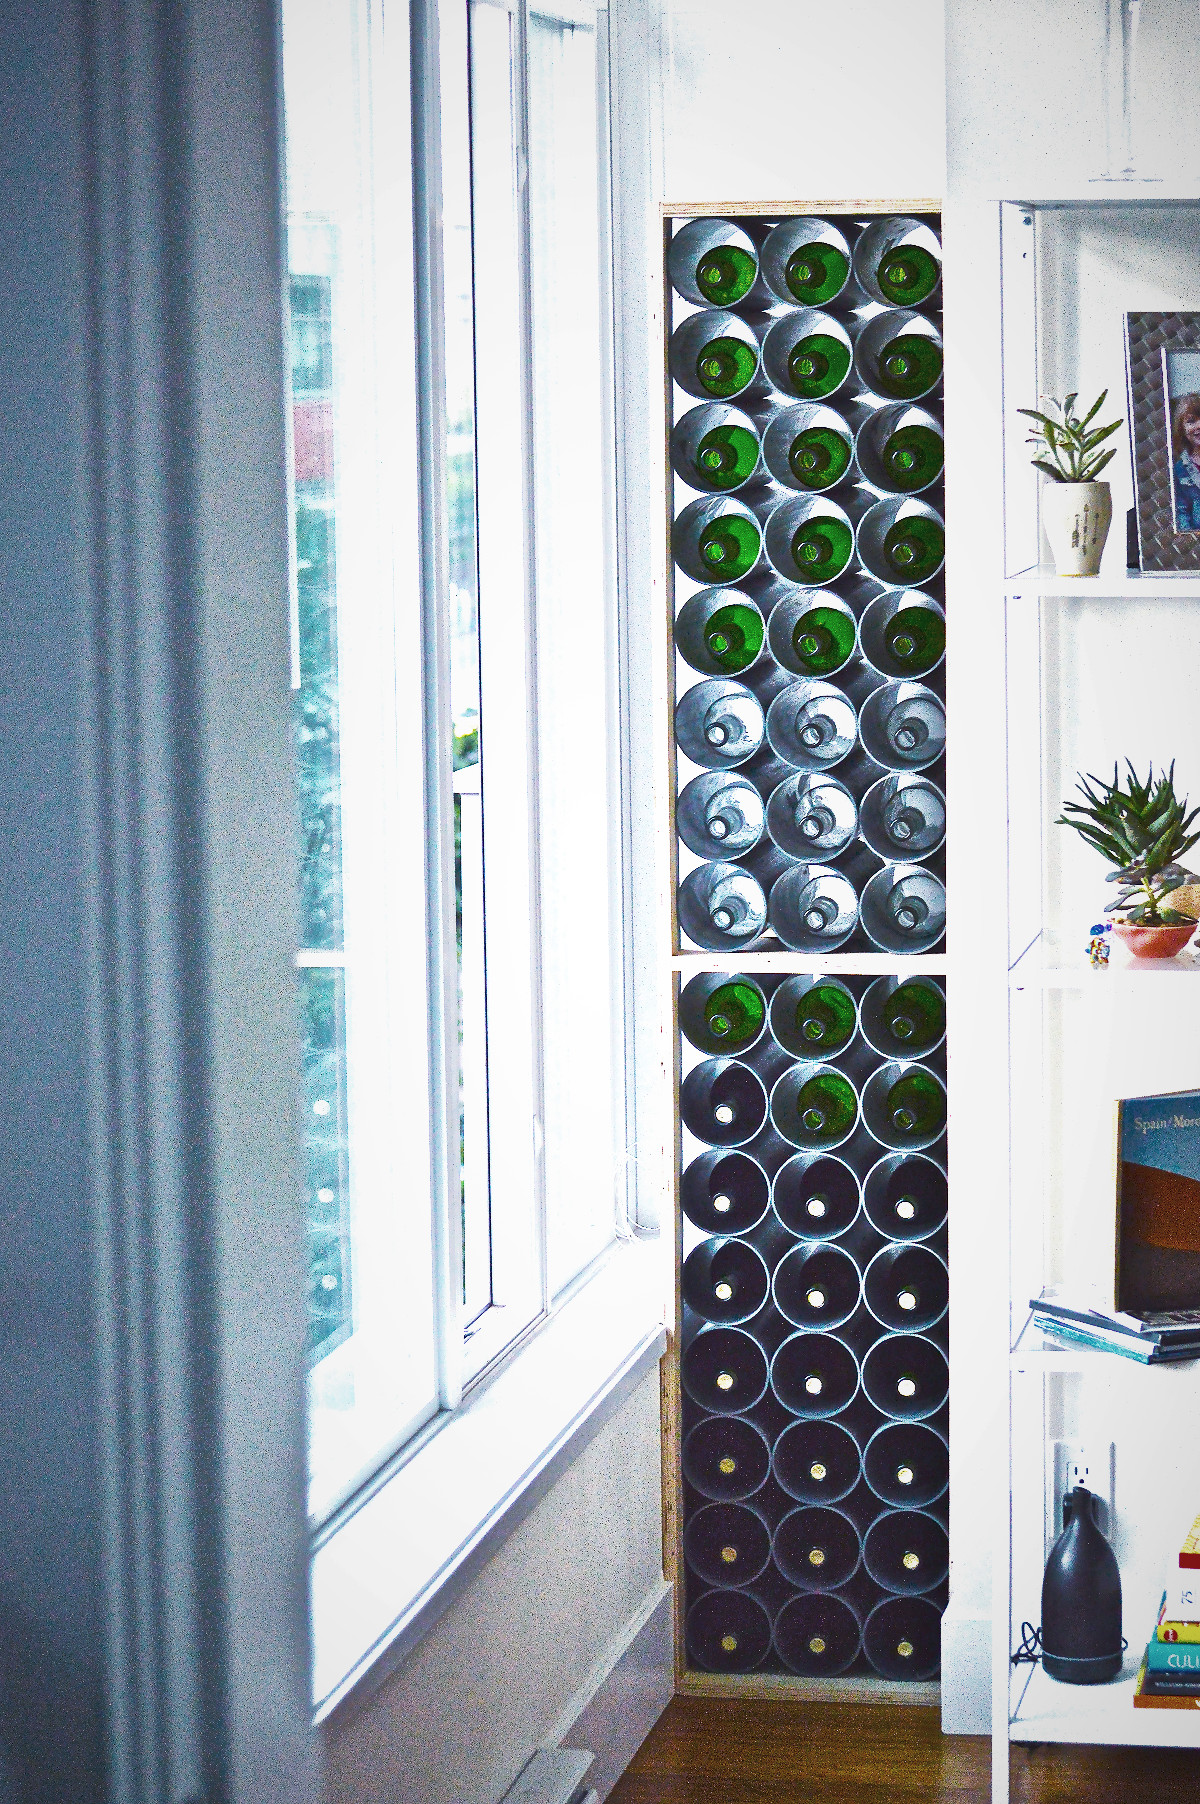 Wine Storage At Home images 13